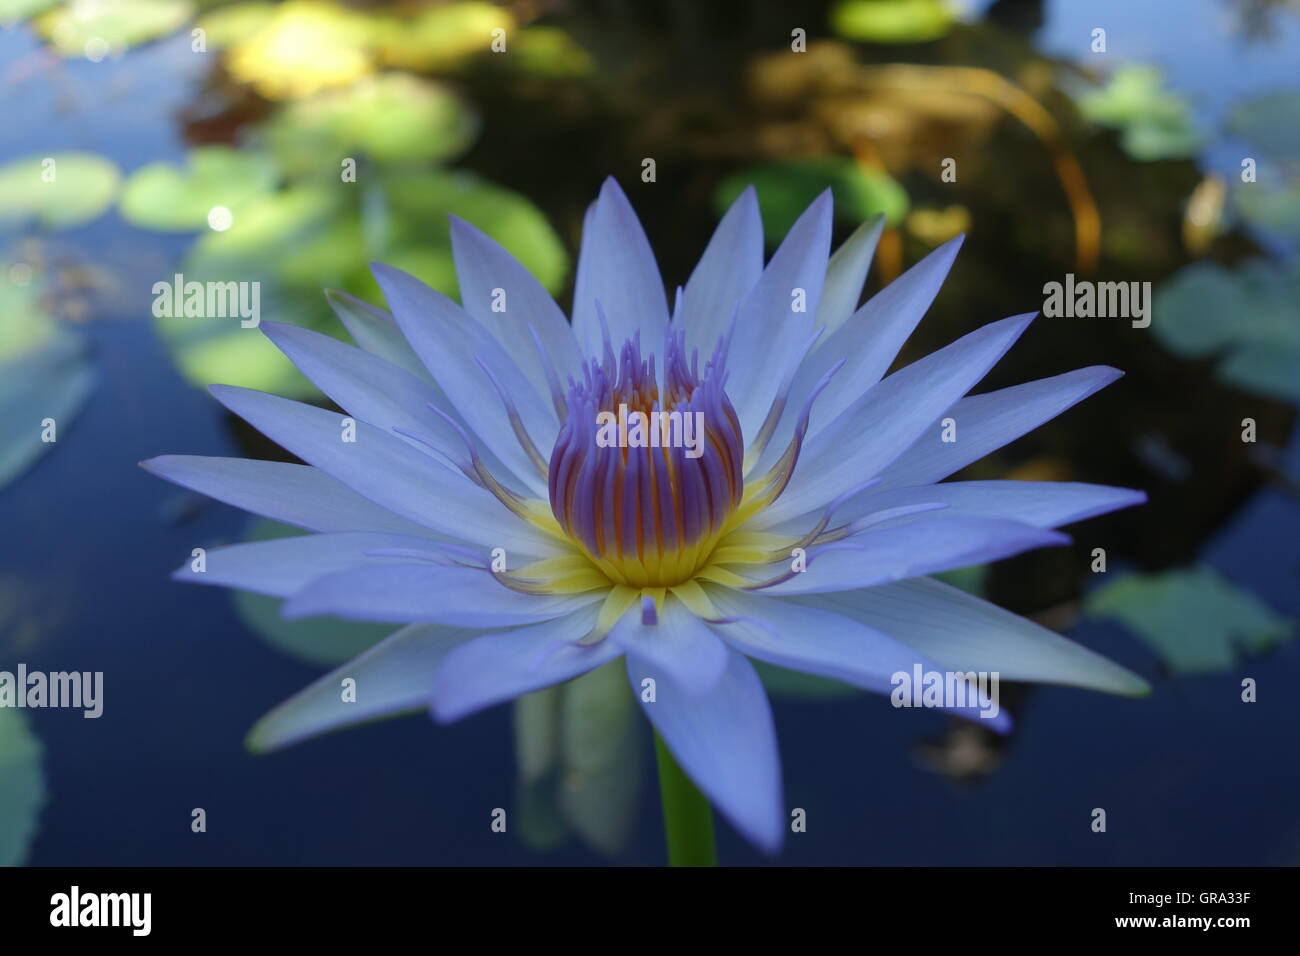 Blue Lotus Flower Stock Photos Blue Lotus Flower Stock Images Alamy